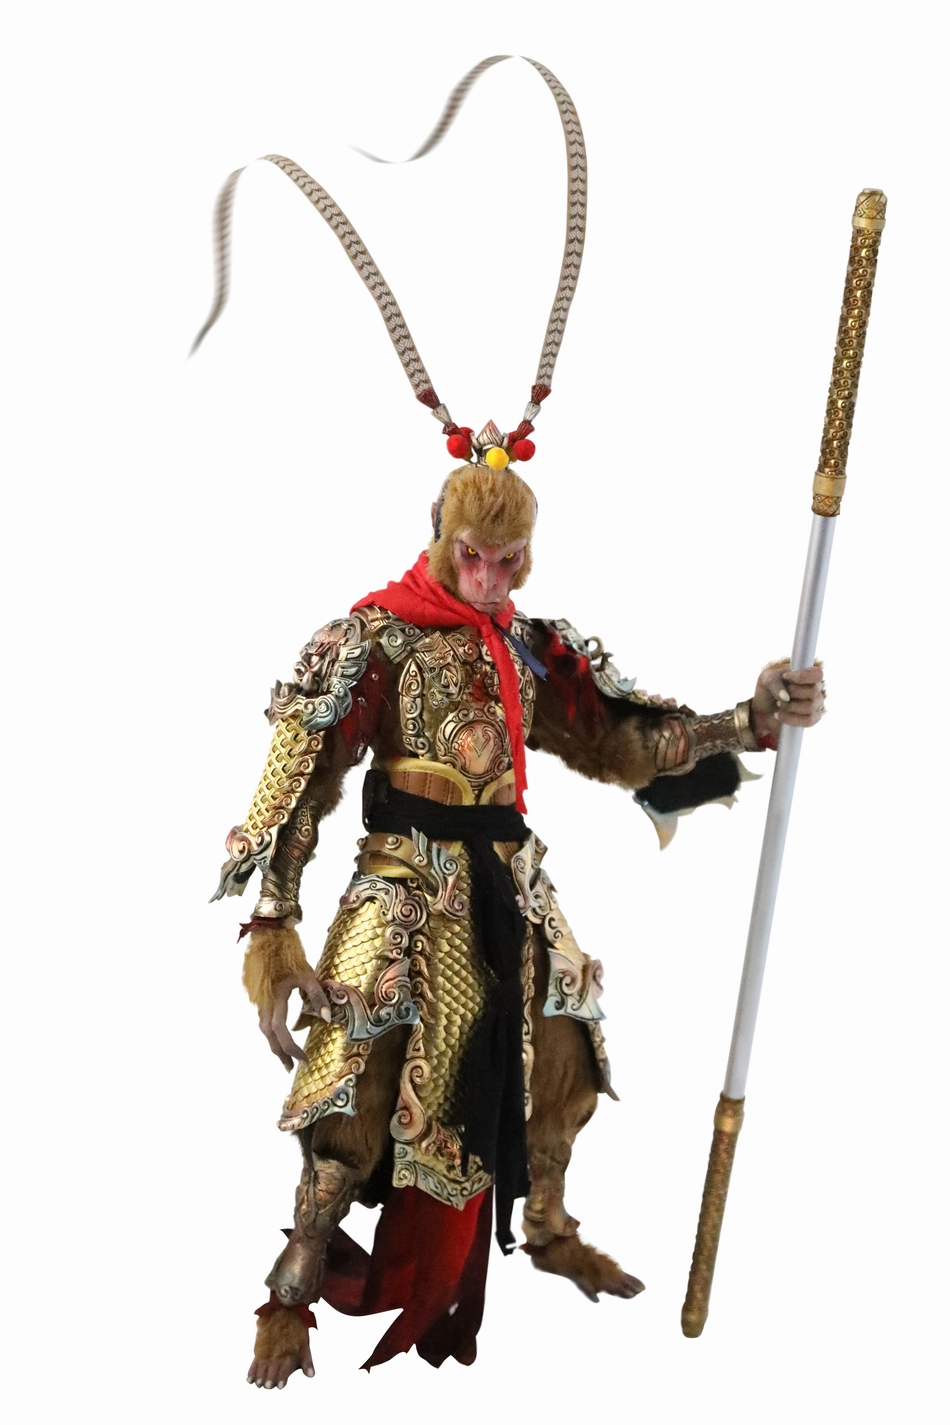 EveningPhase - NEW PRODUCT: 303TOYS x Evening phase: 1/6 National Wind Legend Series - Sun Wukong Monkey King Apocalypse & Dasheng Qitian & Stepping 18091110